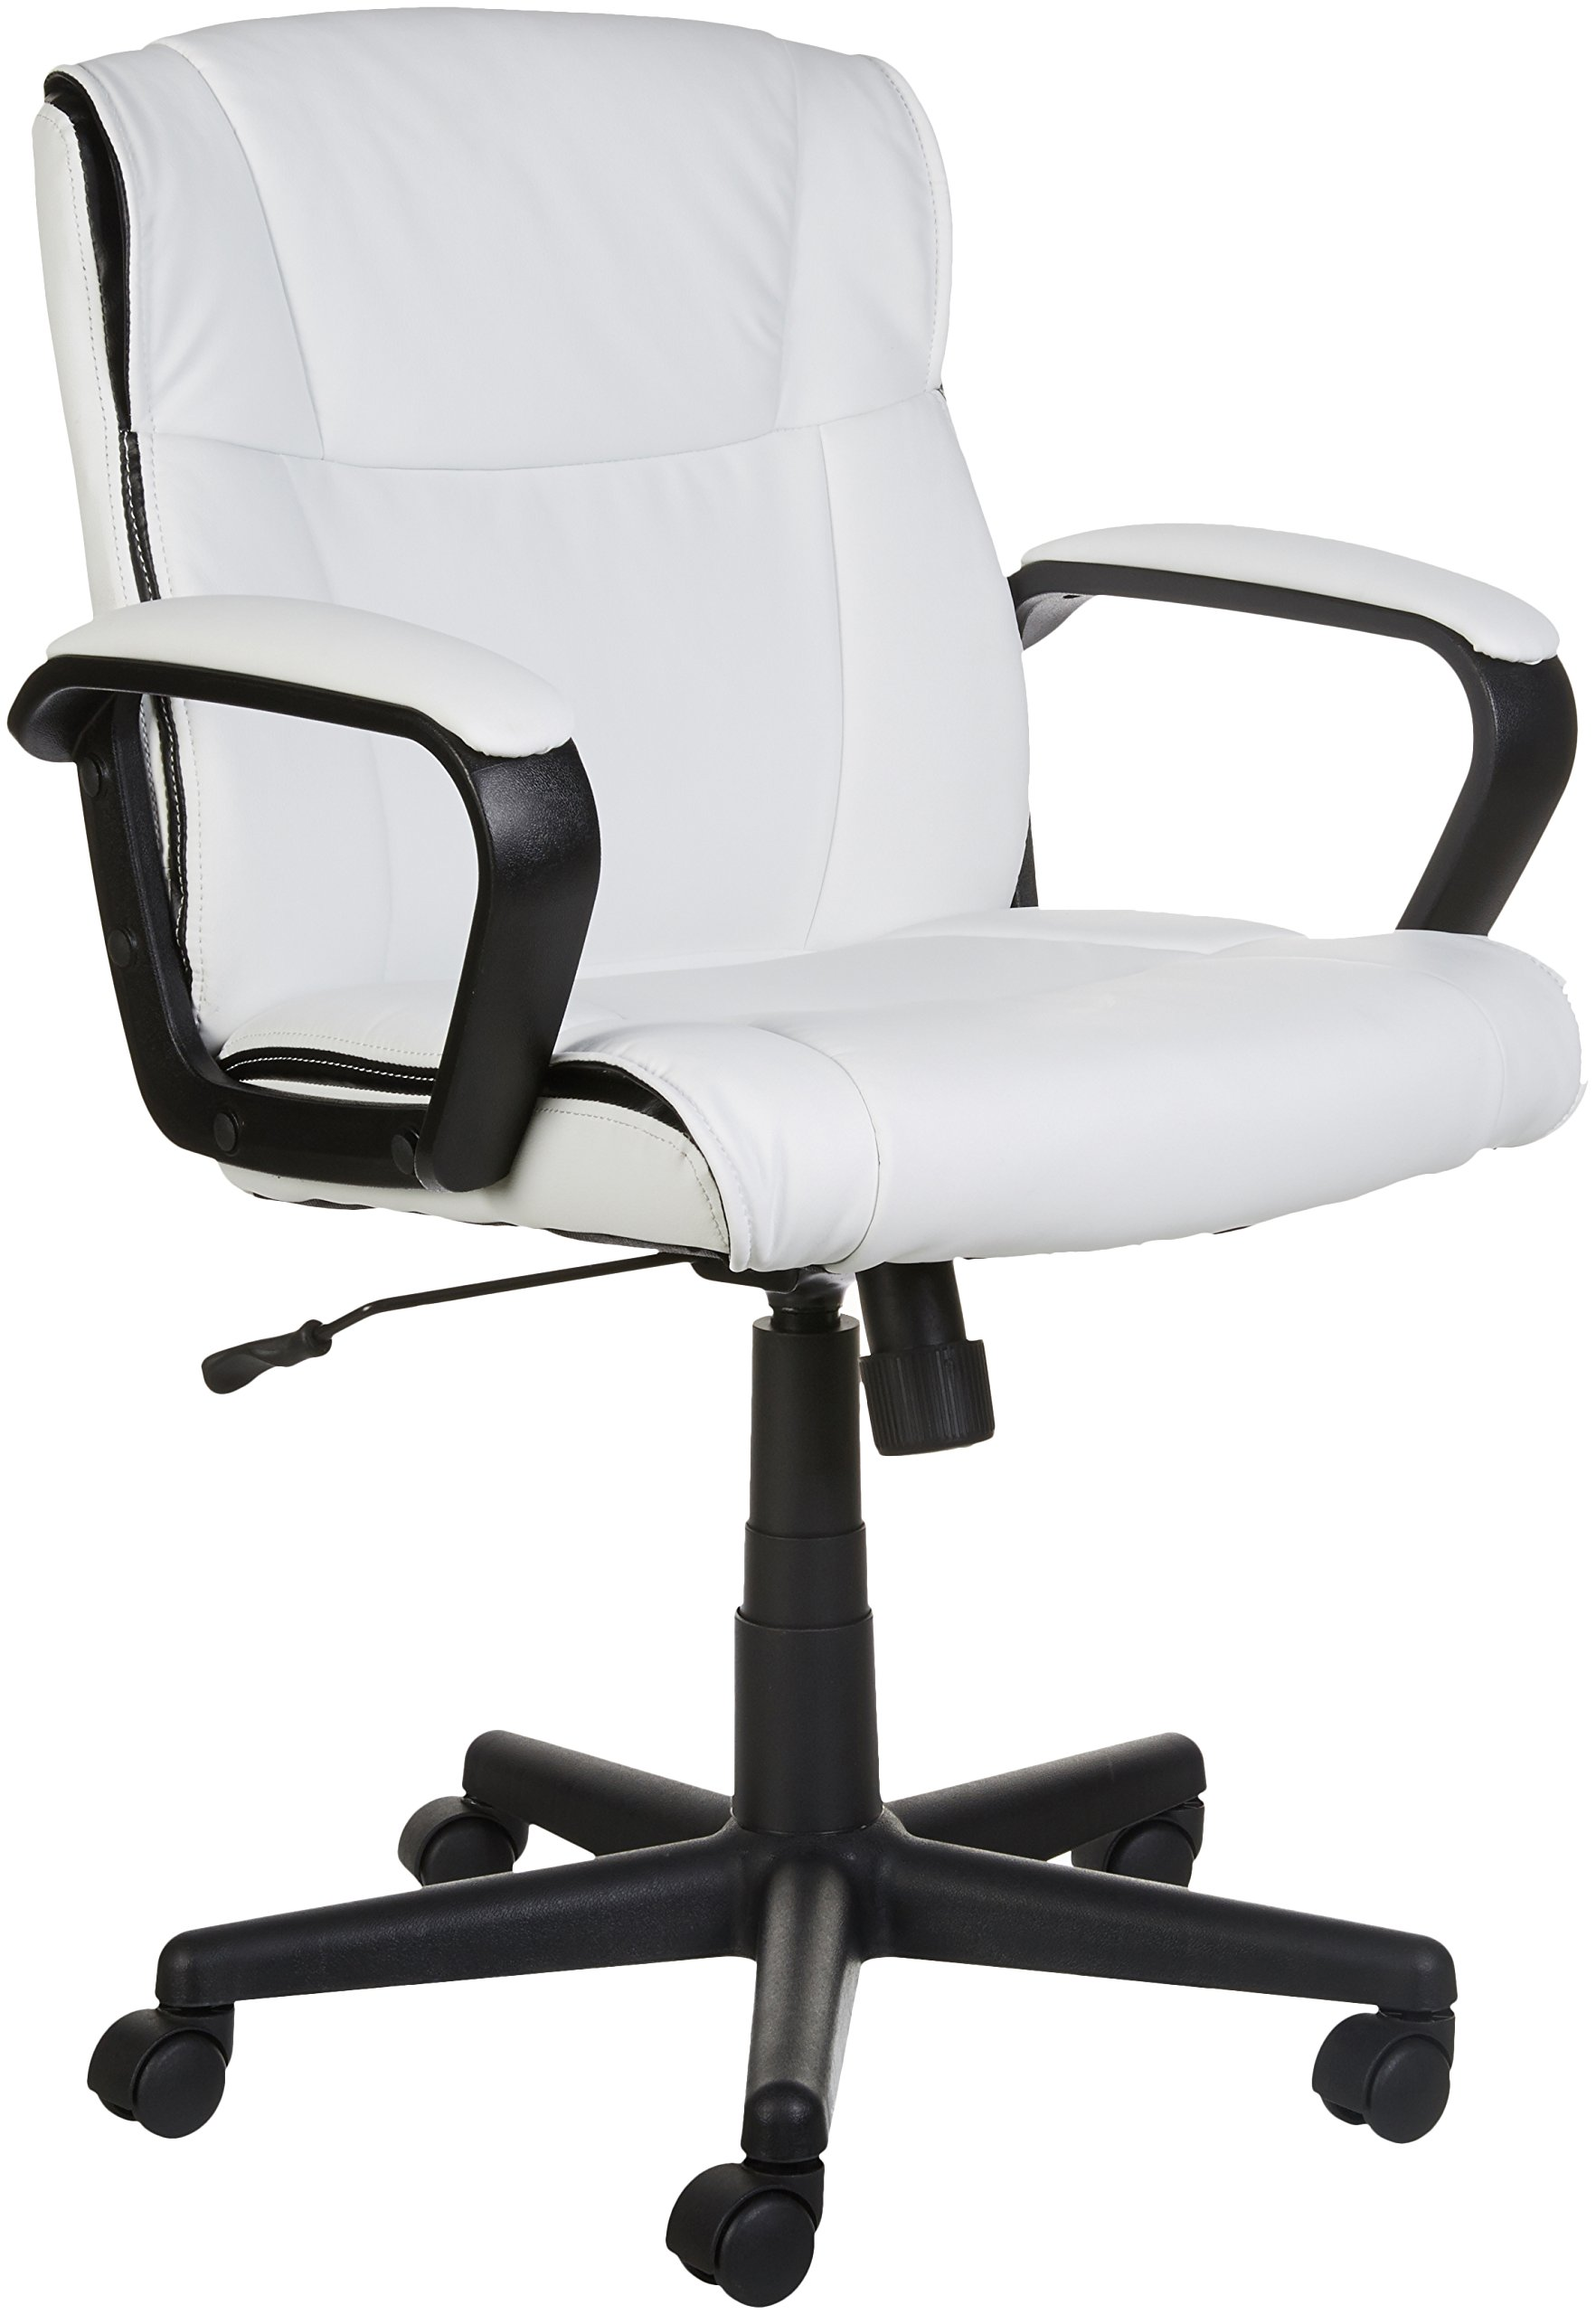 AmazonBasics Classic Leather-Padded Mid-Back Office Computer Desk Chair with Armrest - White by AmazonBasics (Image #2)